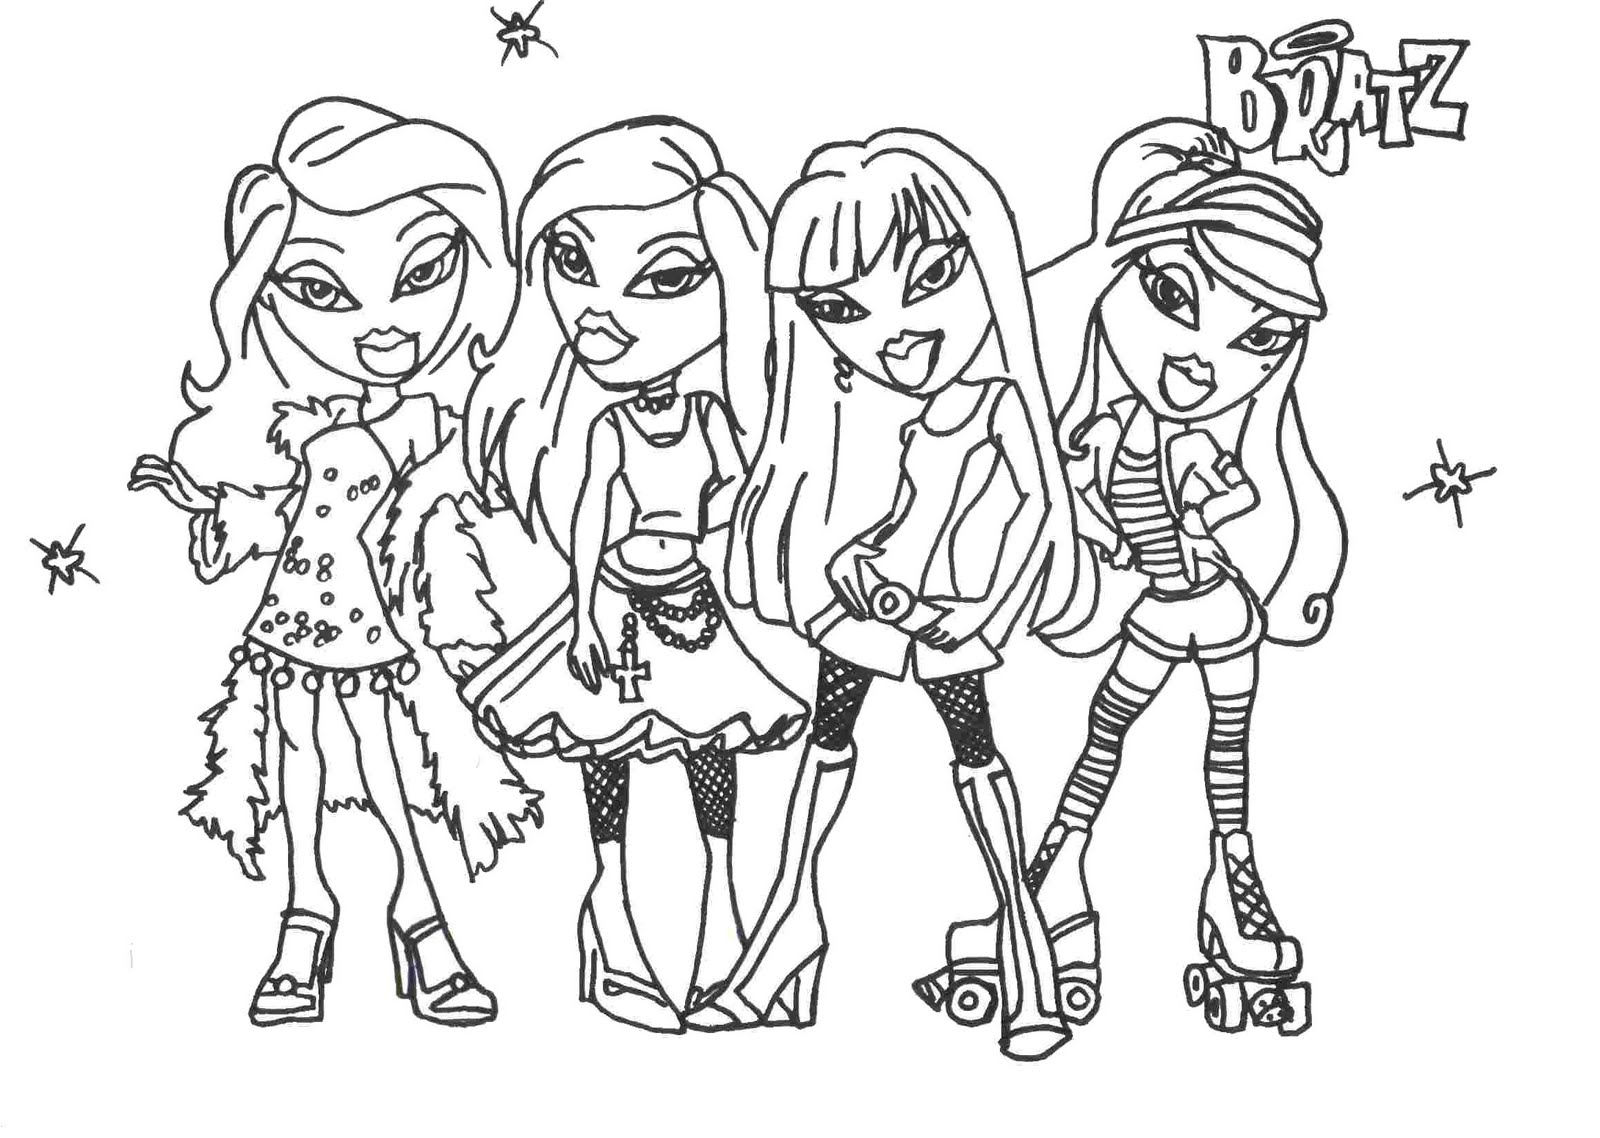 coloring pages for girls 8 coloring kids - Coloring Pages To Print For Girls